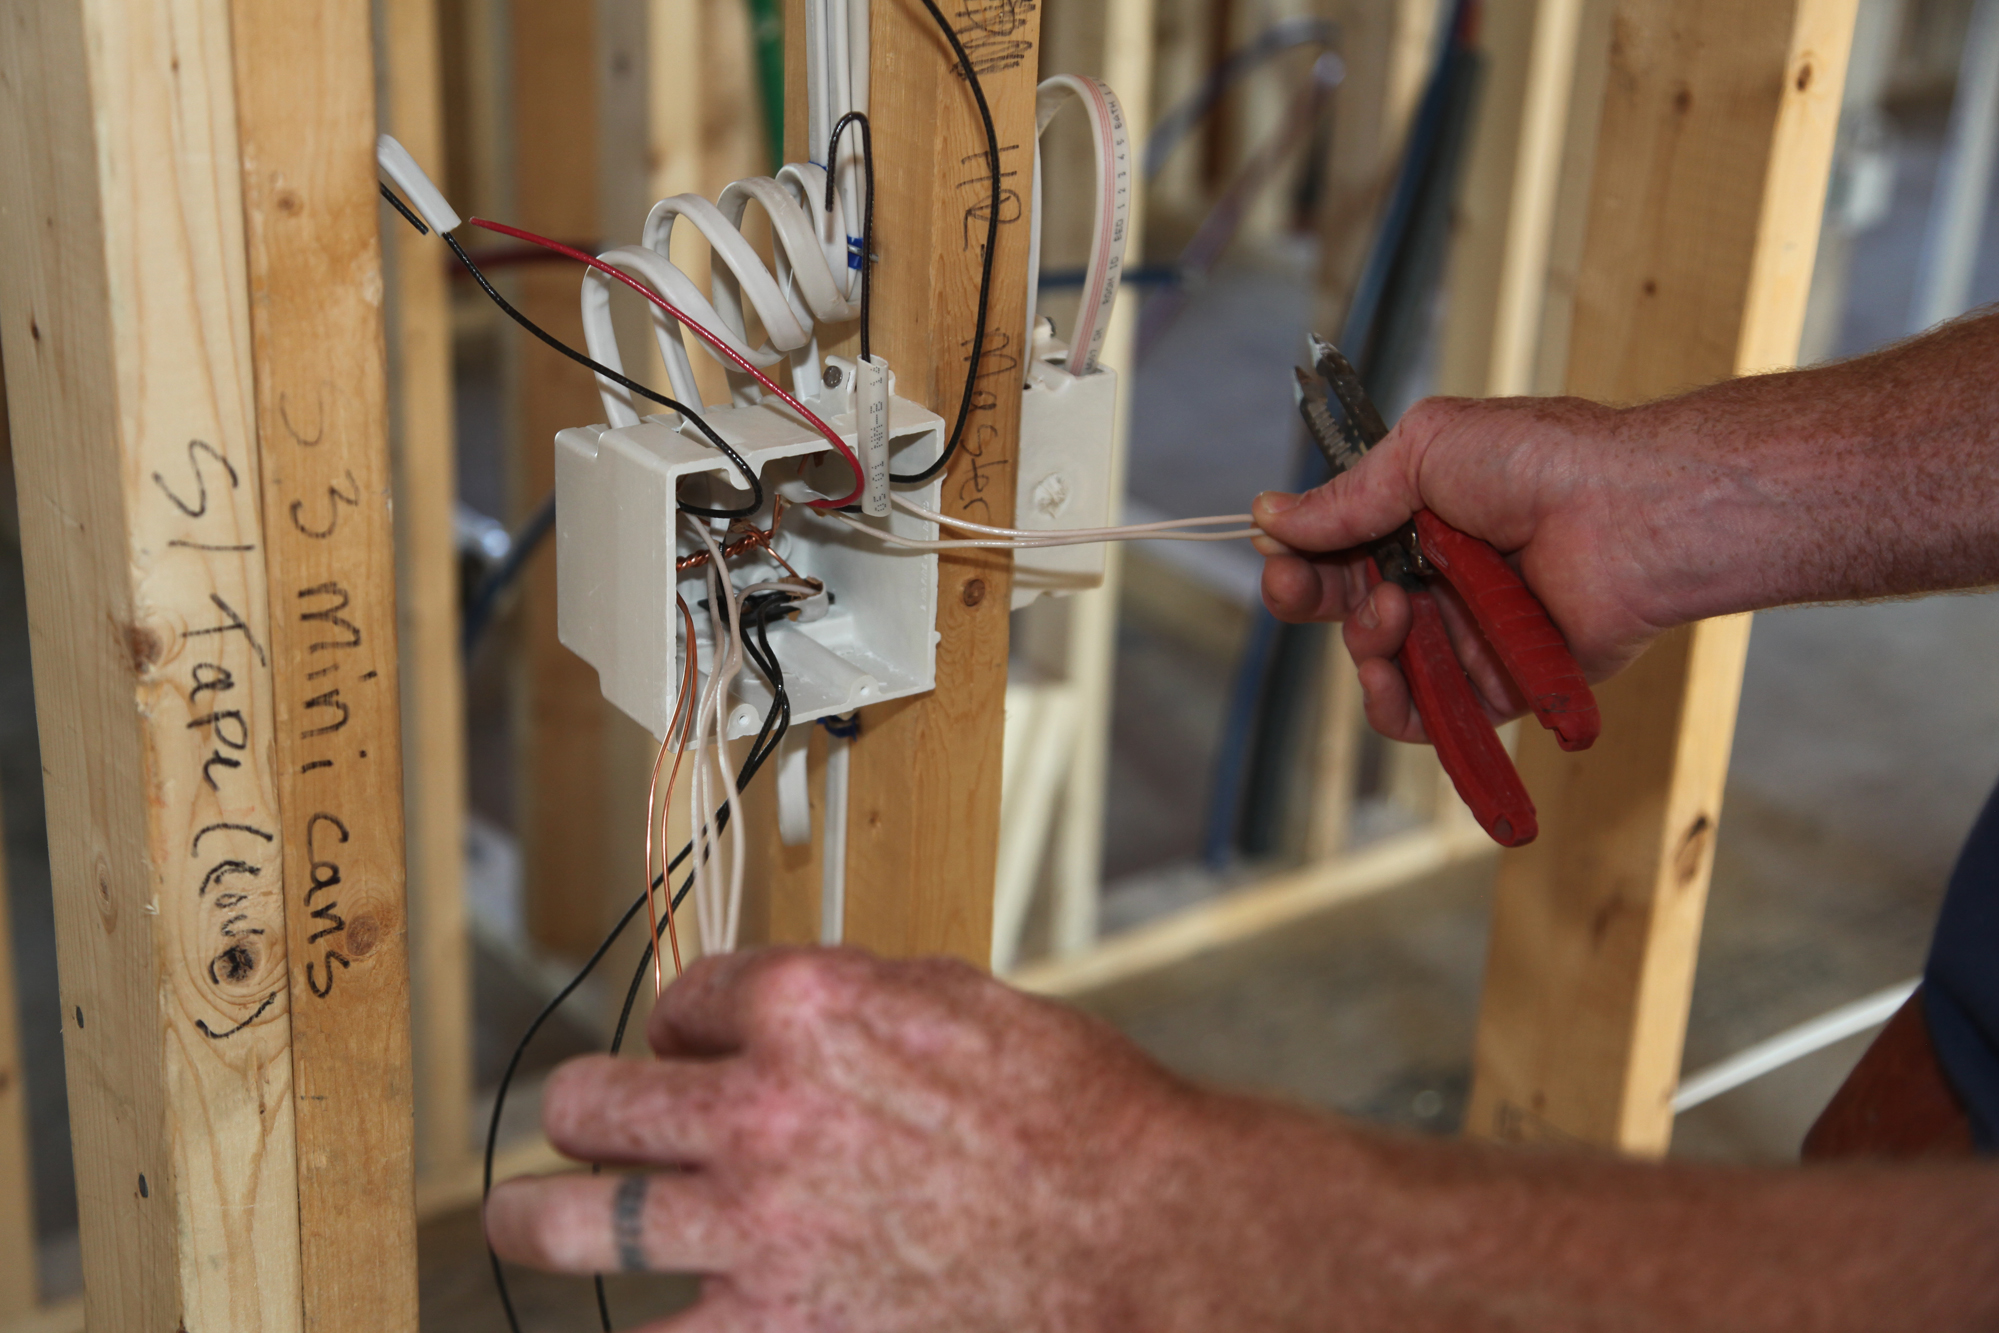 Rough-In Wiring | JLC Online | Wiring and Cable, Electrical ...